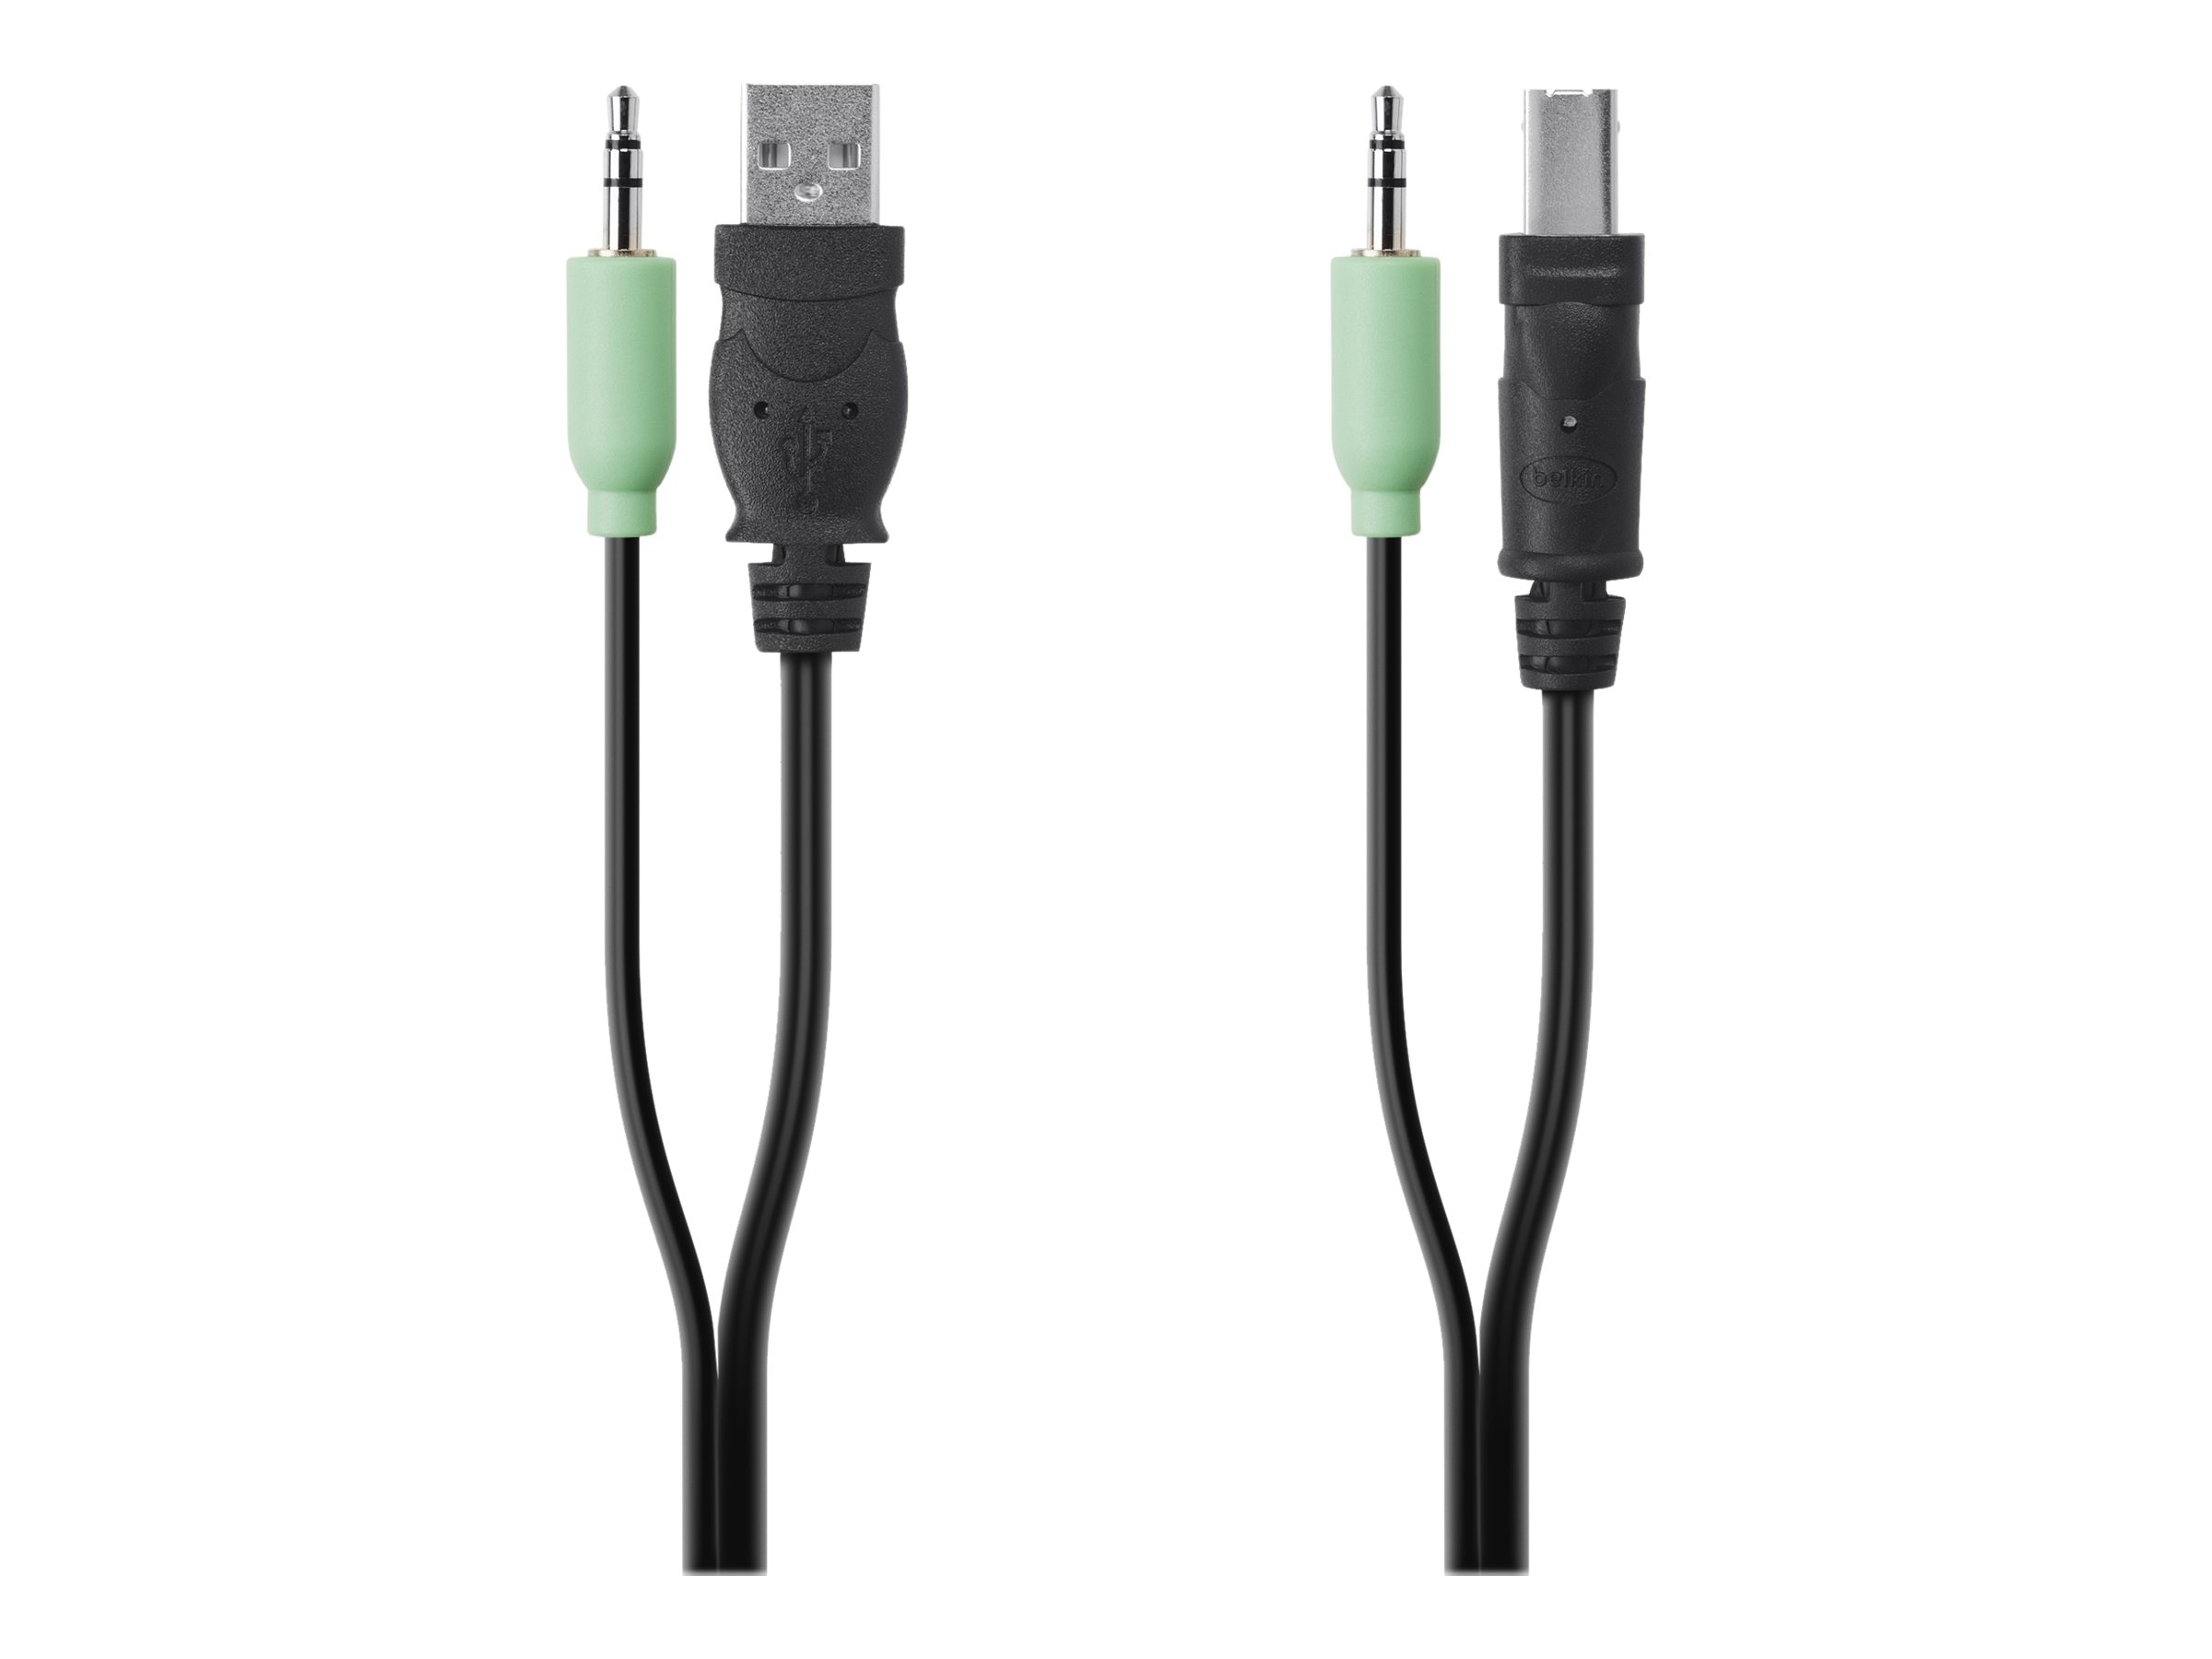 Belkin USB Audio SKVM Cable, USB Type A to USB Type B, 3.5mm Audio, 6ft, F1D9022B06, 15672504, Cables